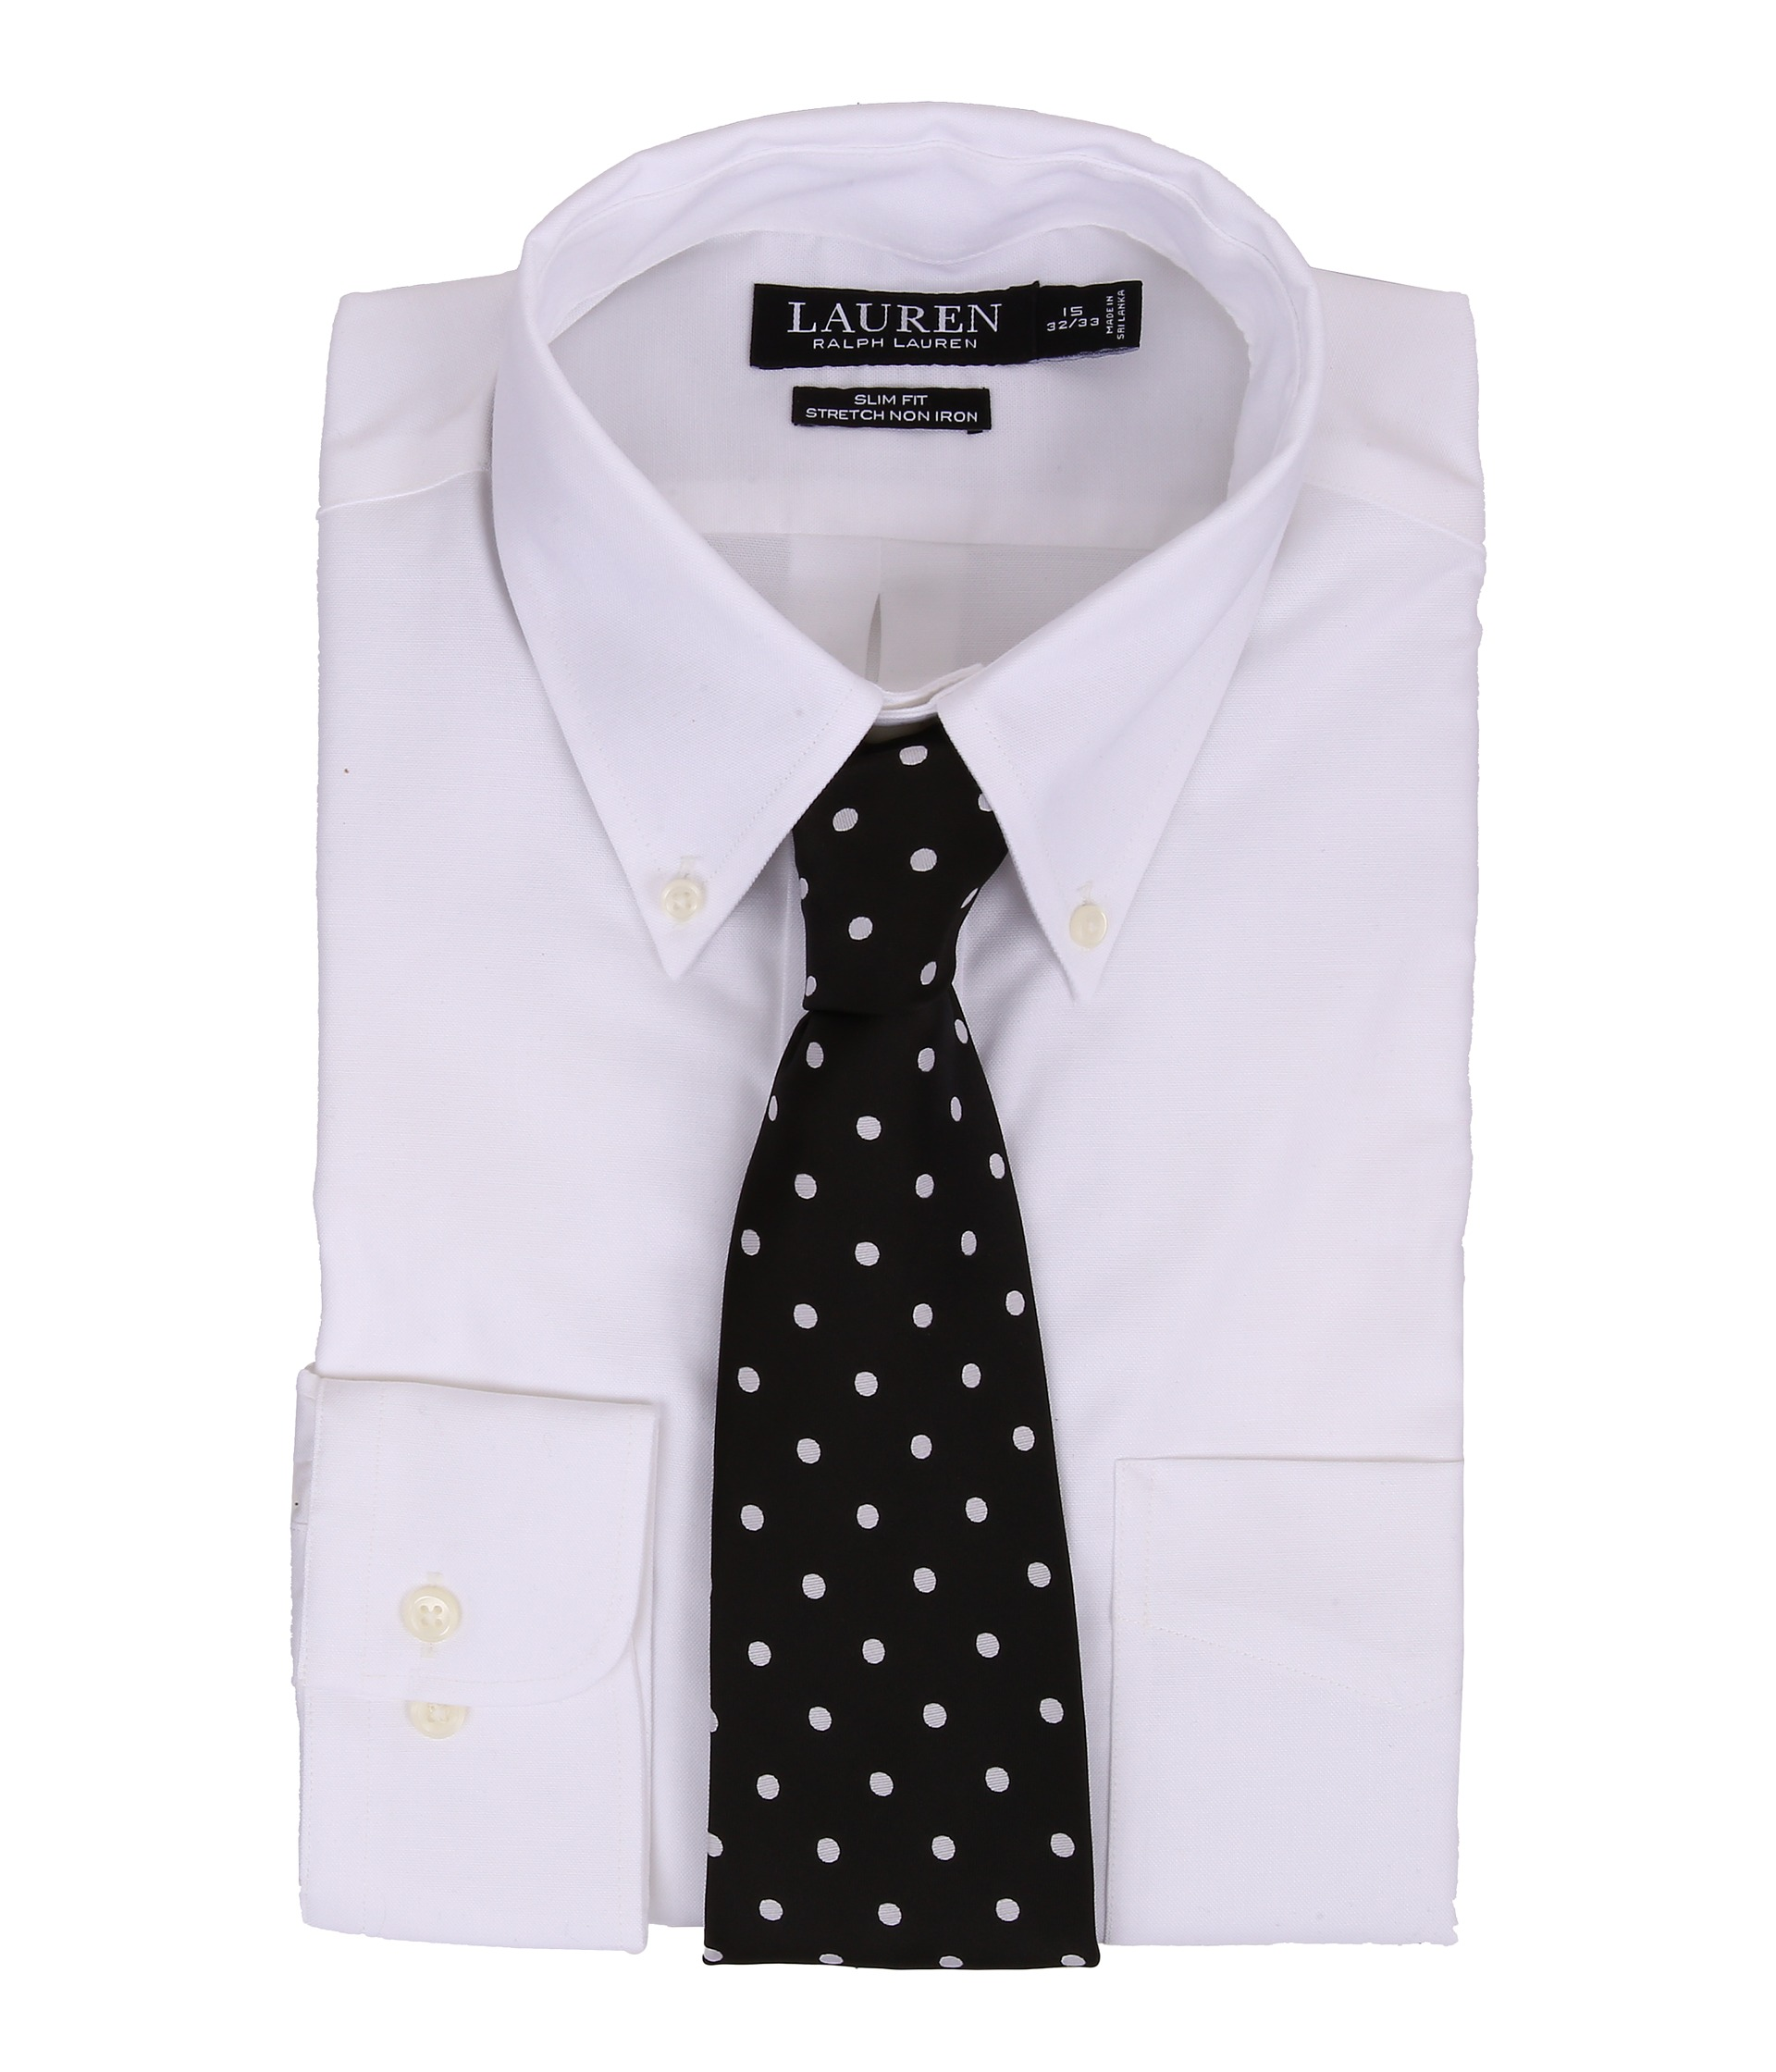 Lauren ralph lauren slim fit stretch pinpoint non iron for Pinpoint button down dress shirt